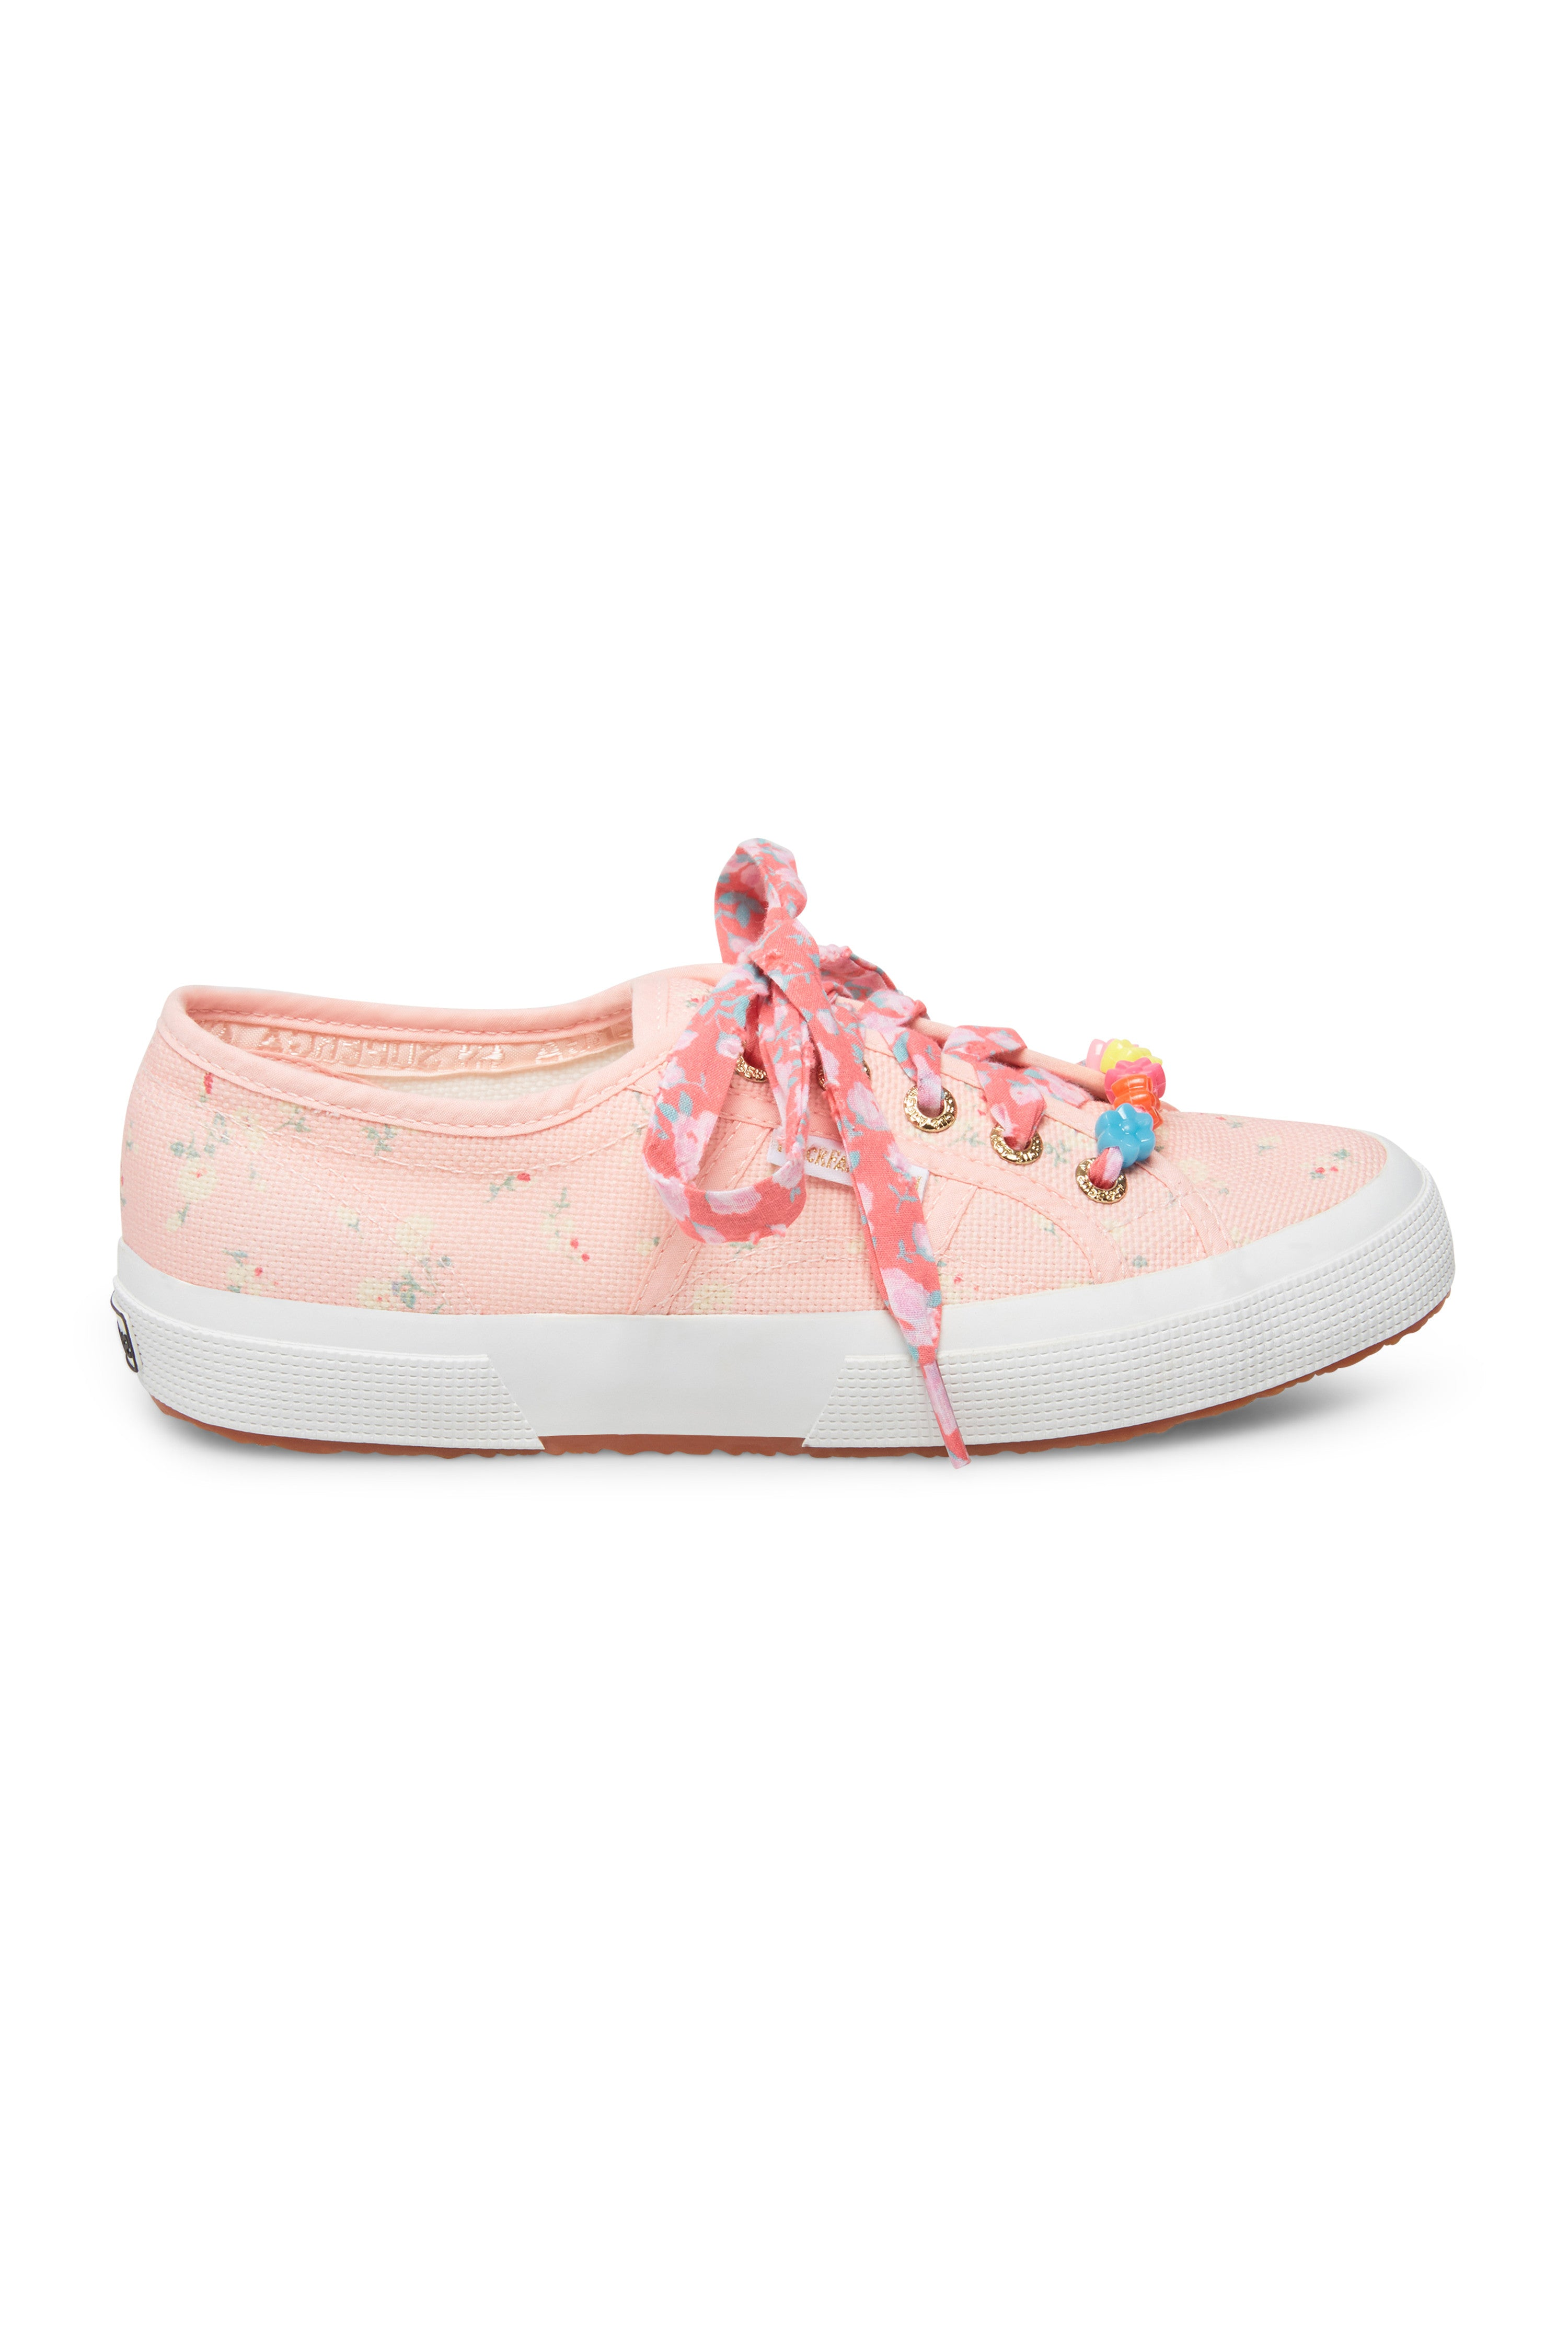 classic sneakers womens